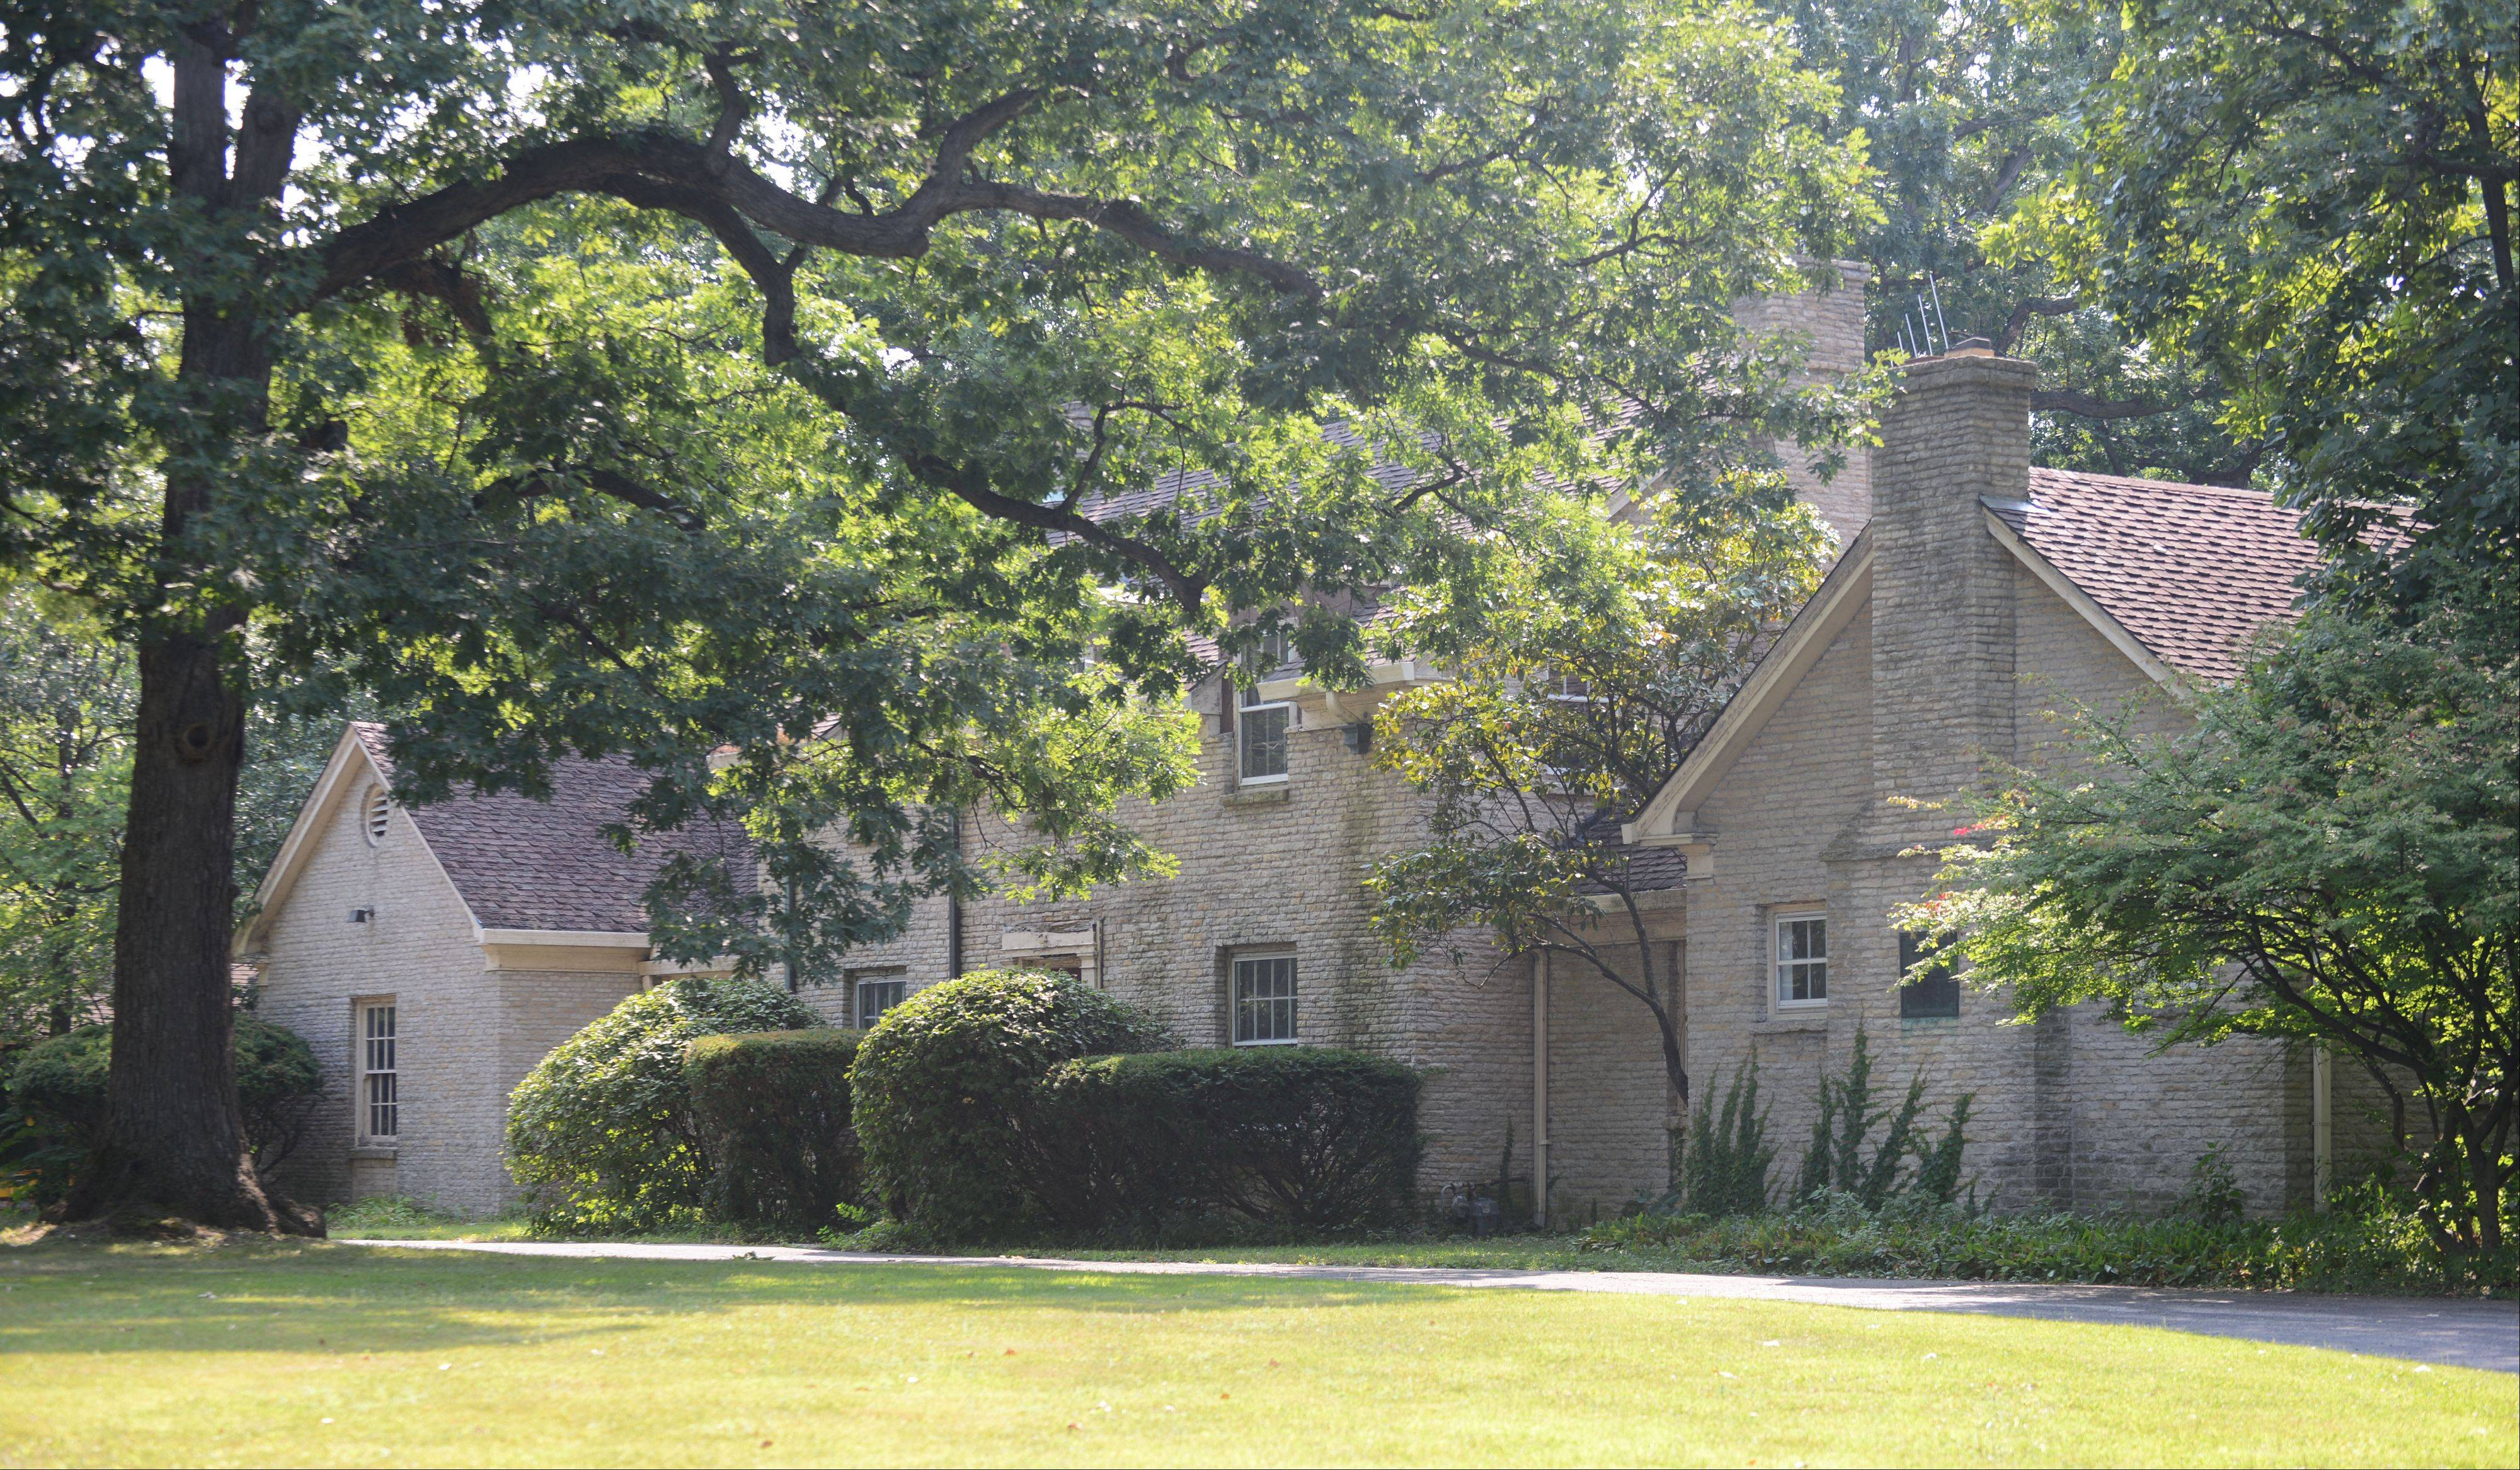 The structure of the McKee House in the Churchill Woods Forest Preserve near Glen Ellyn is in overall good condition, an architect said Wednesday. Preservationists have been trying to save the 78-year-old building from the wrecking ball.